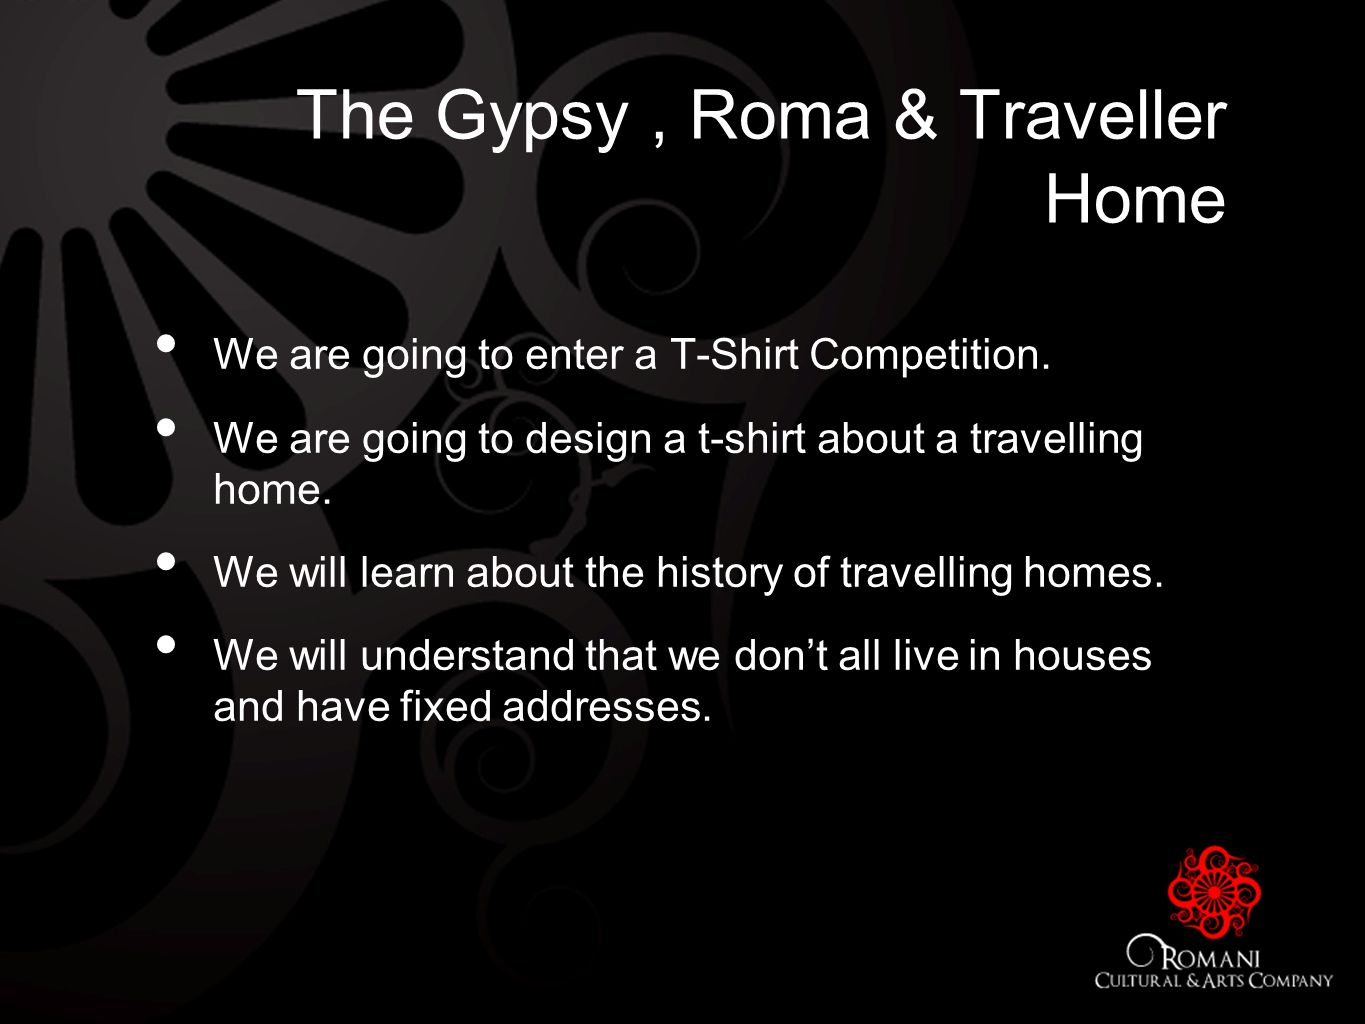 The Gypsy, Roma & Traveller Home We are going to enter a T-Shirt Competition.